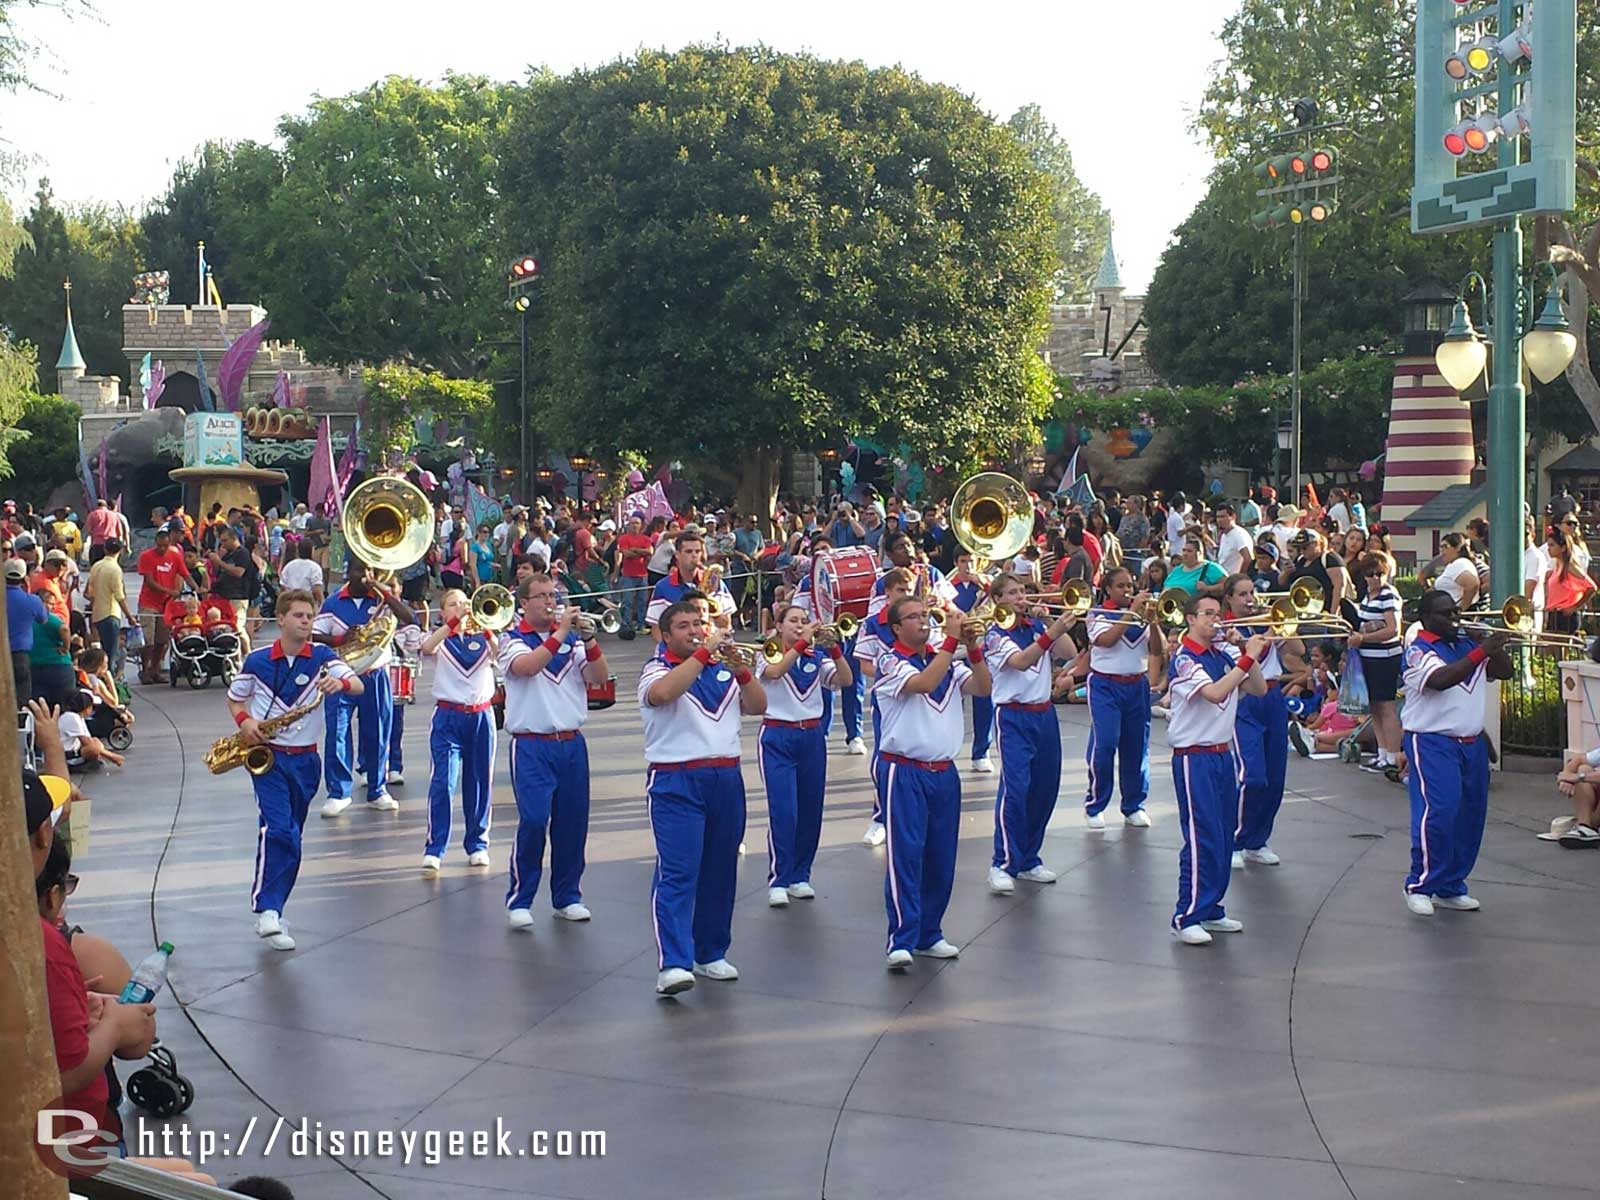 The 2014 #Disneyland All-American College Band performing in Fantasyland